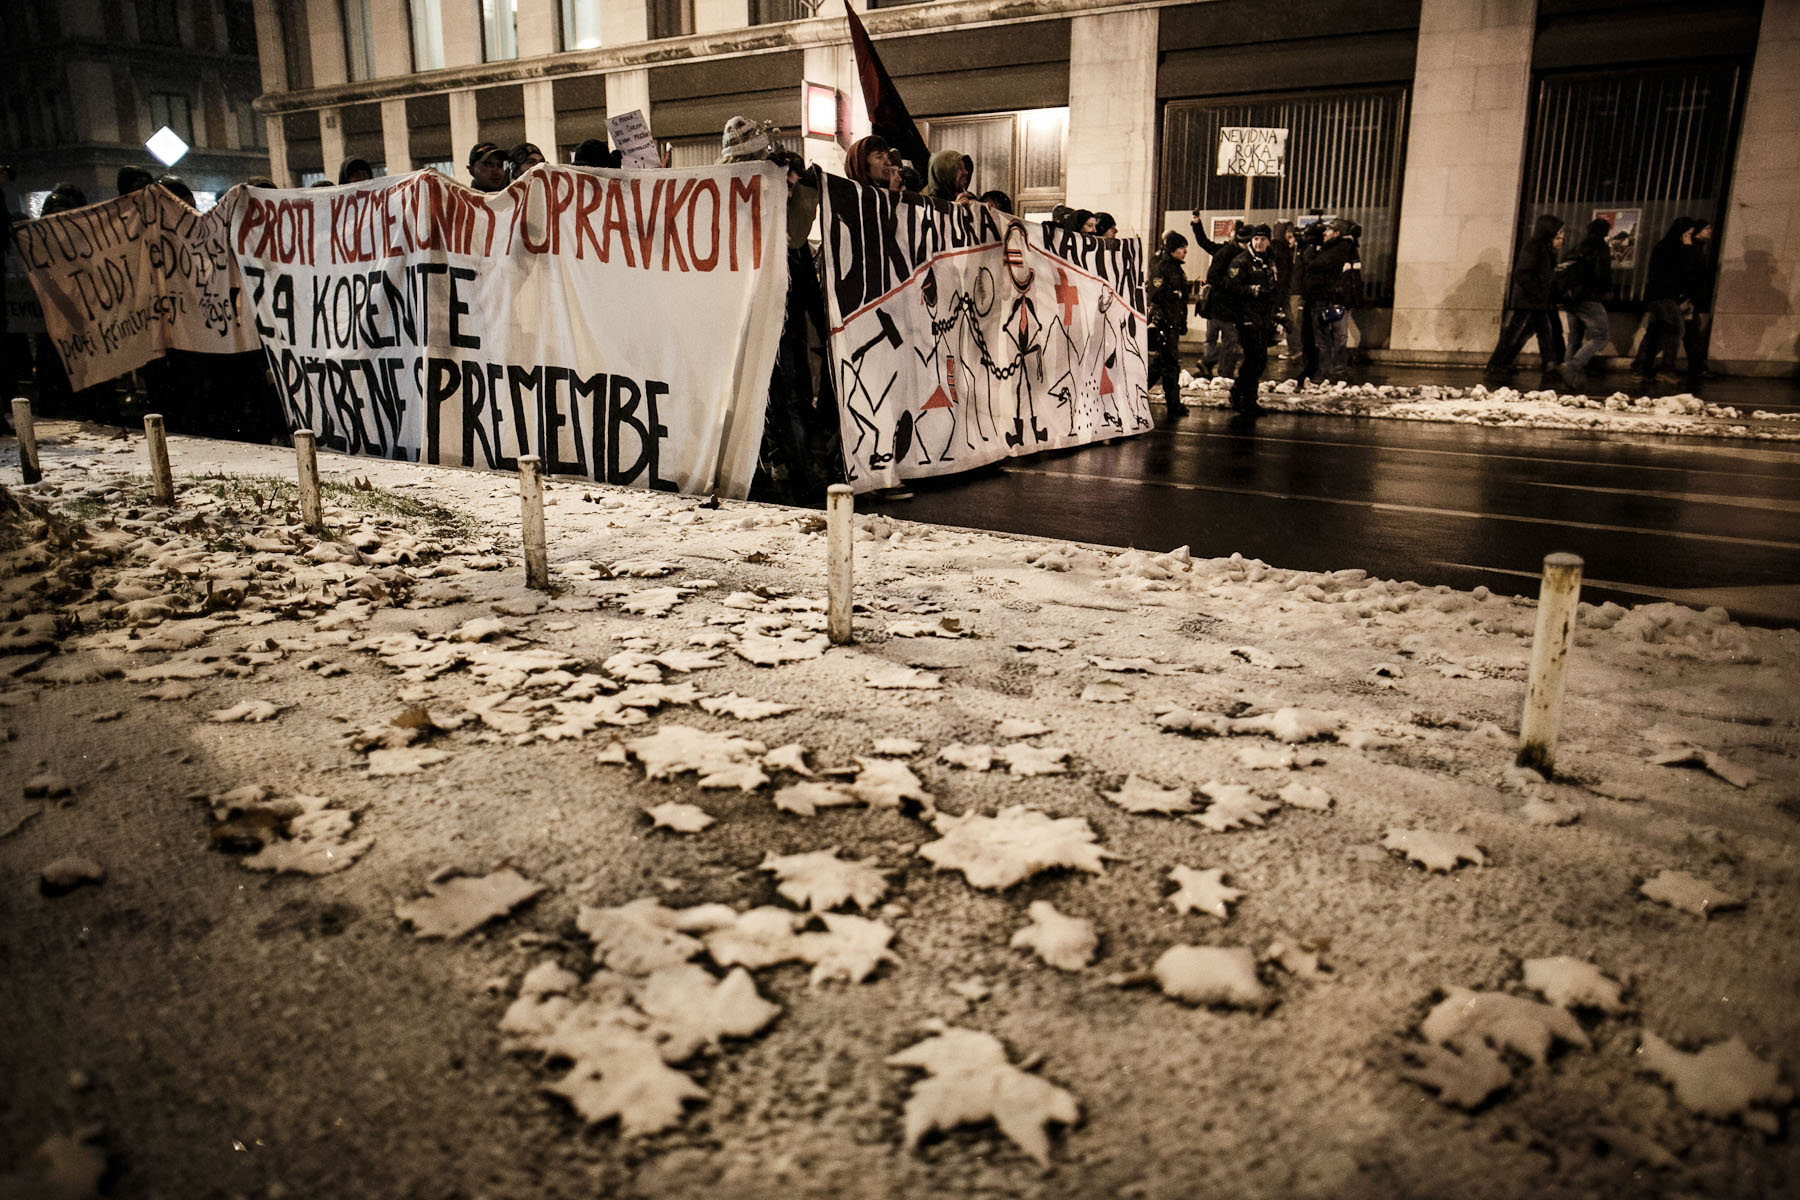 Protesters march through the streets during anti-government protests in Ljubljana, Slovenia, on December 7, 2012.